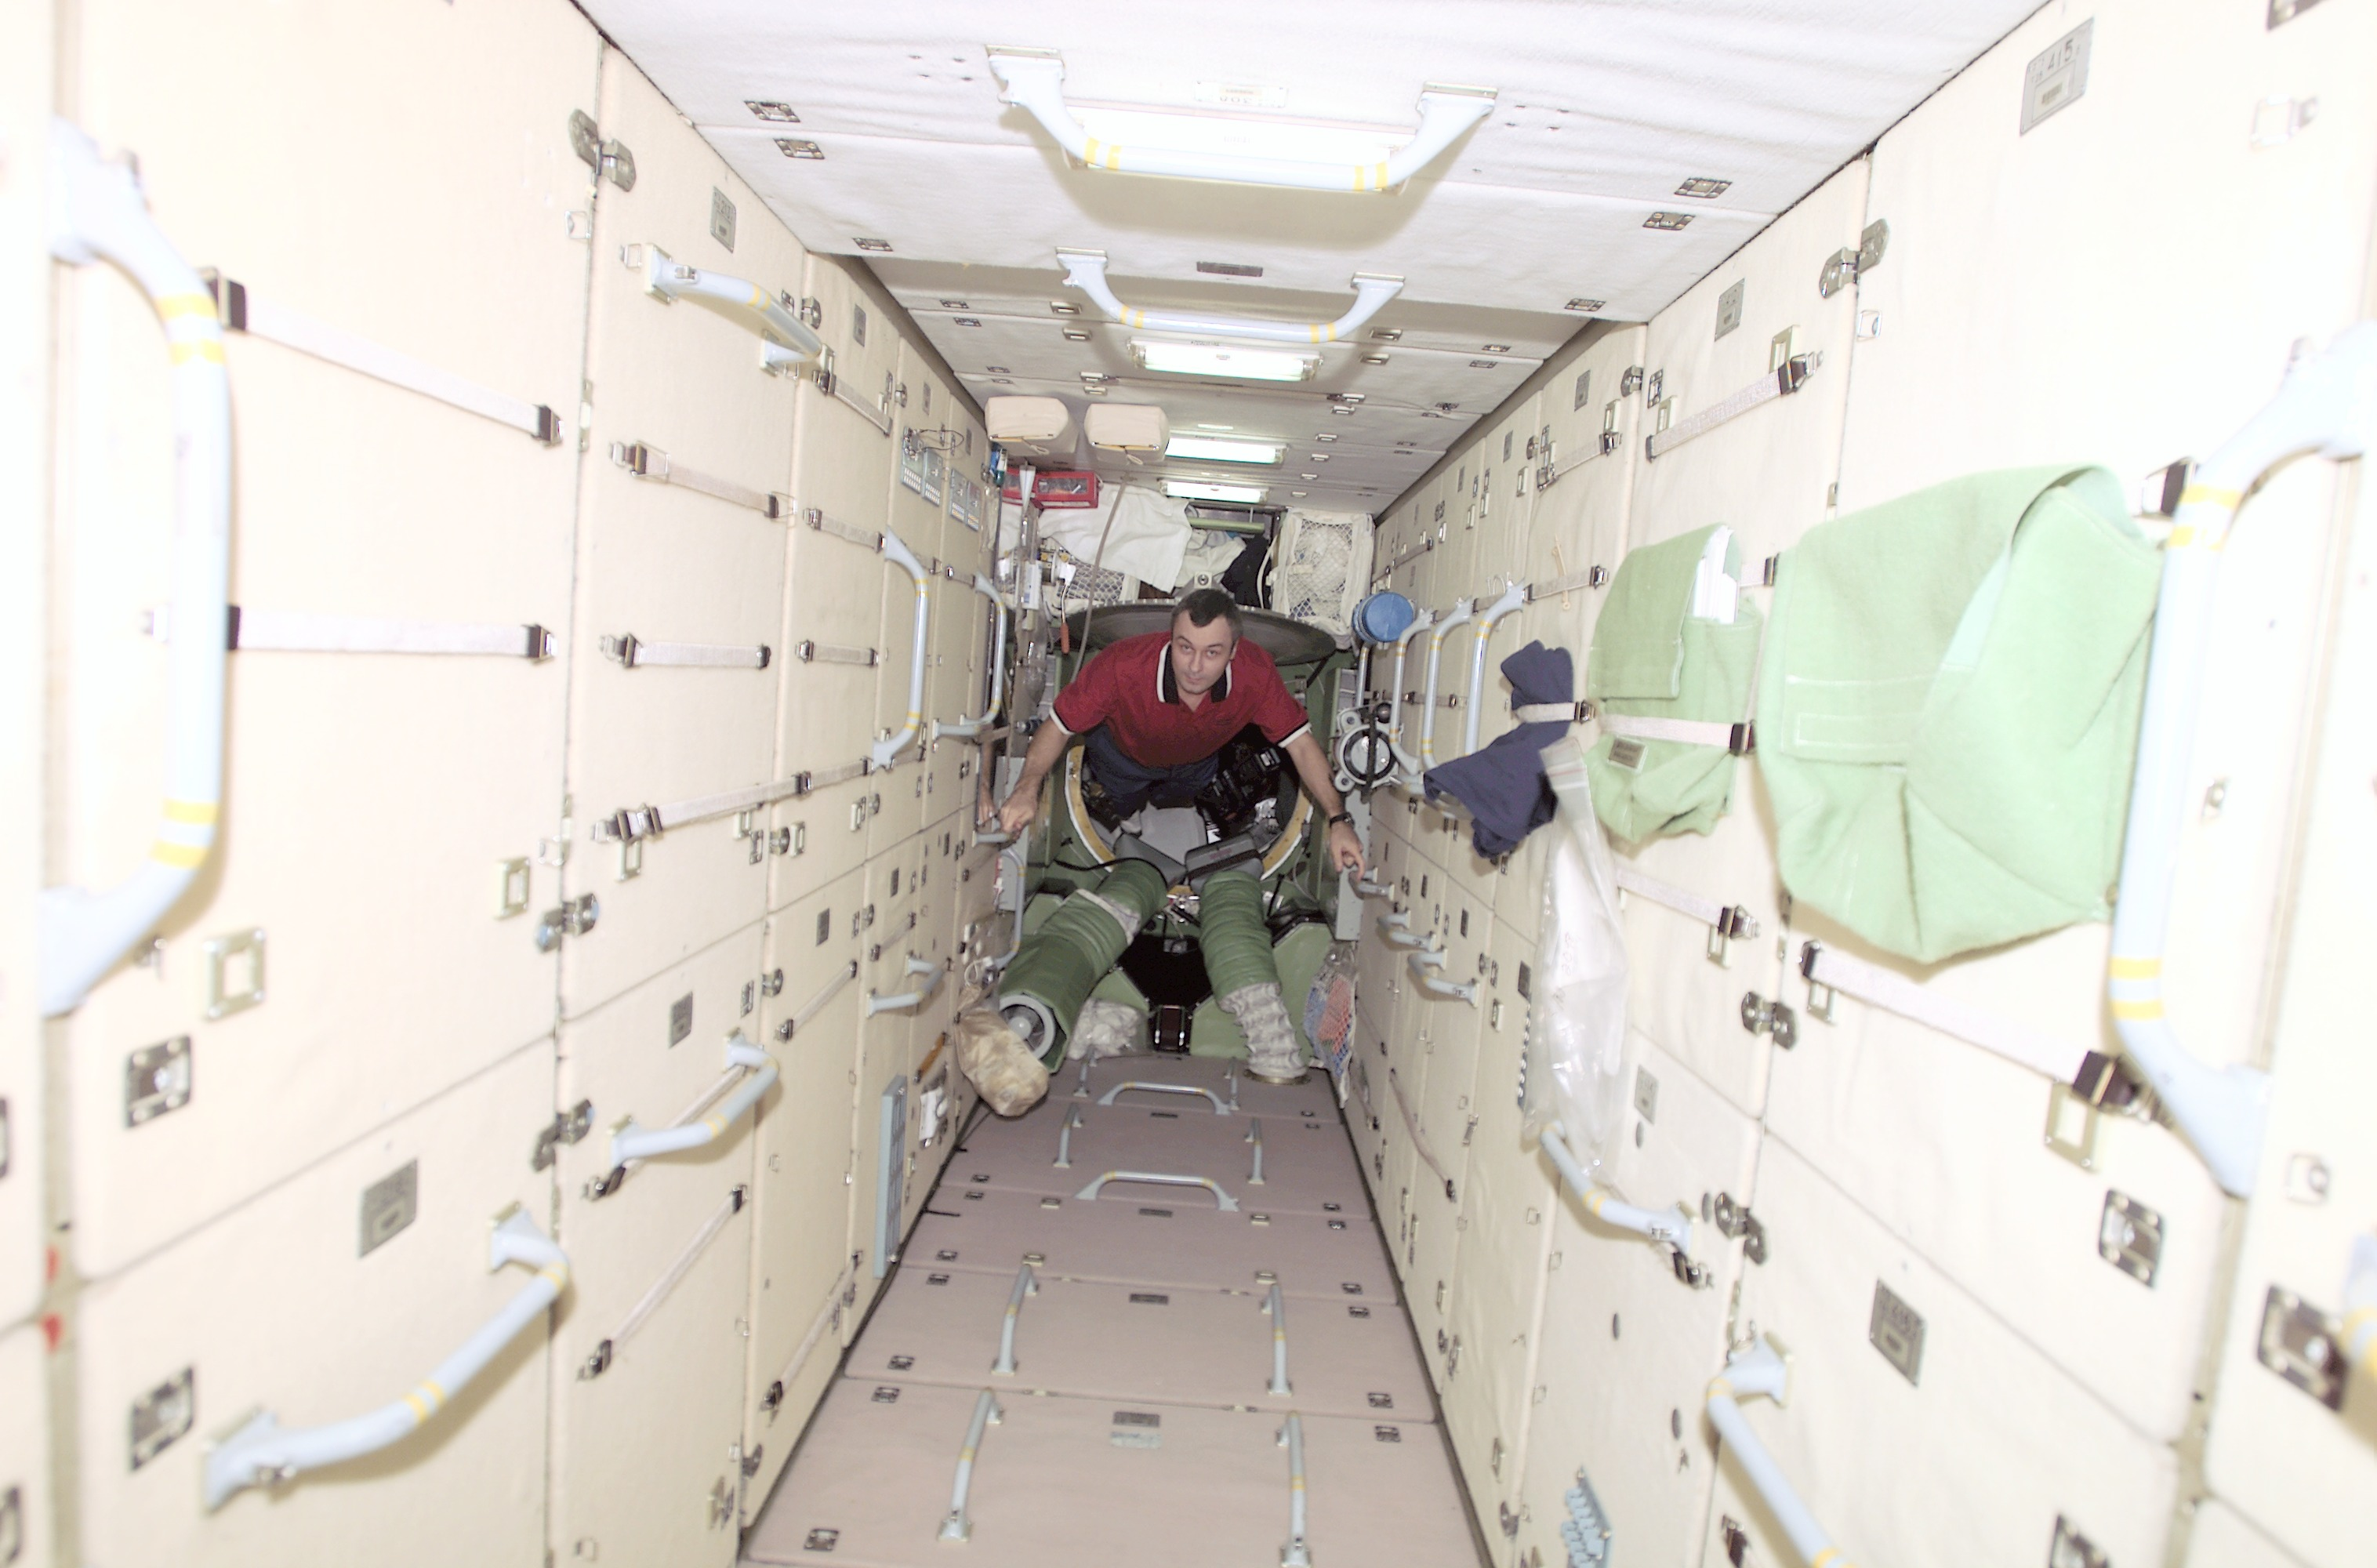 Nasa ISS Interior - Pics about space